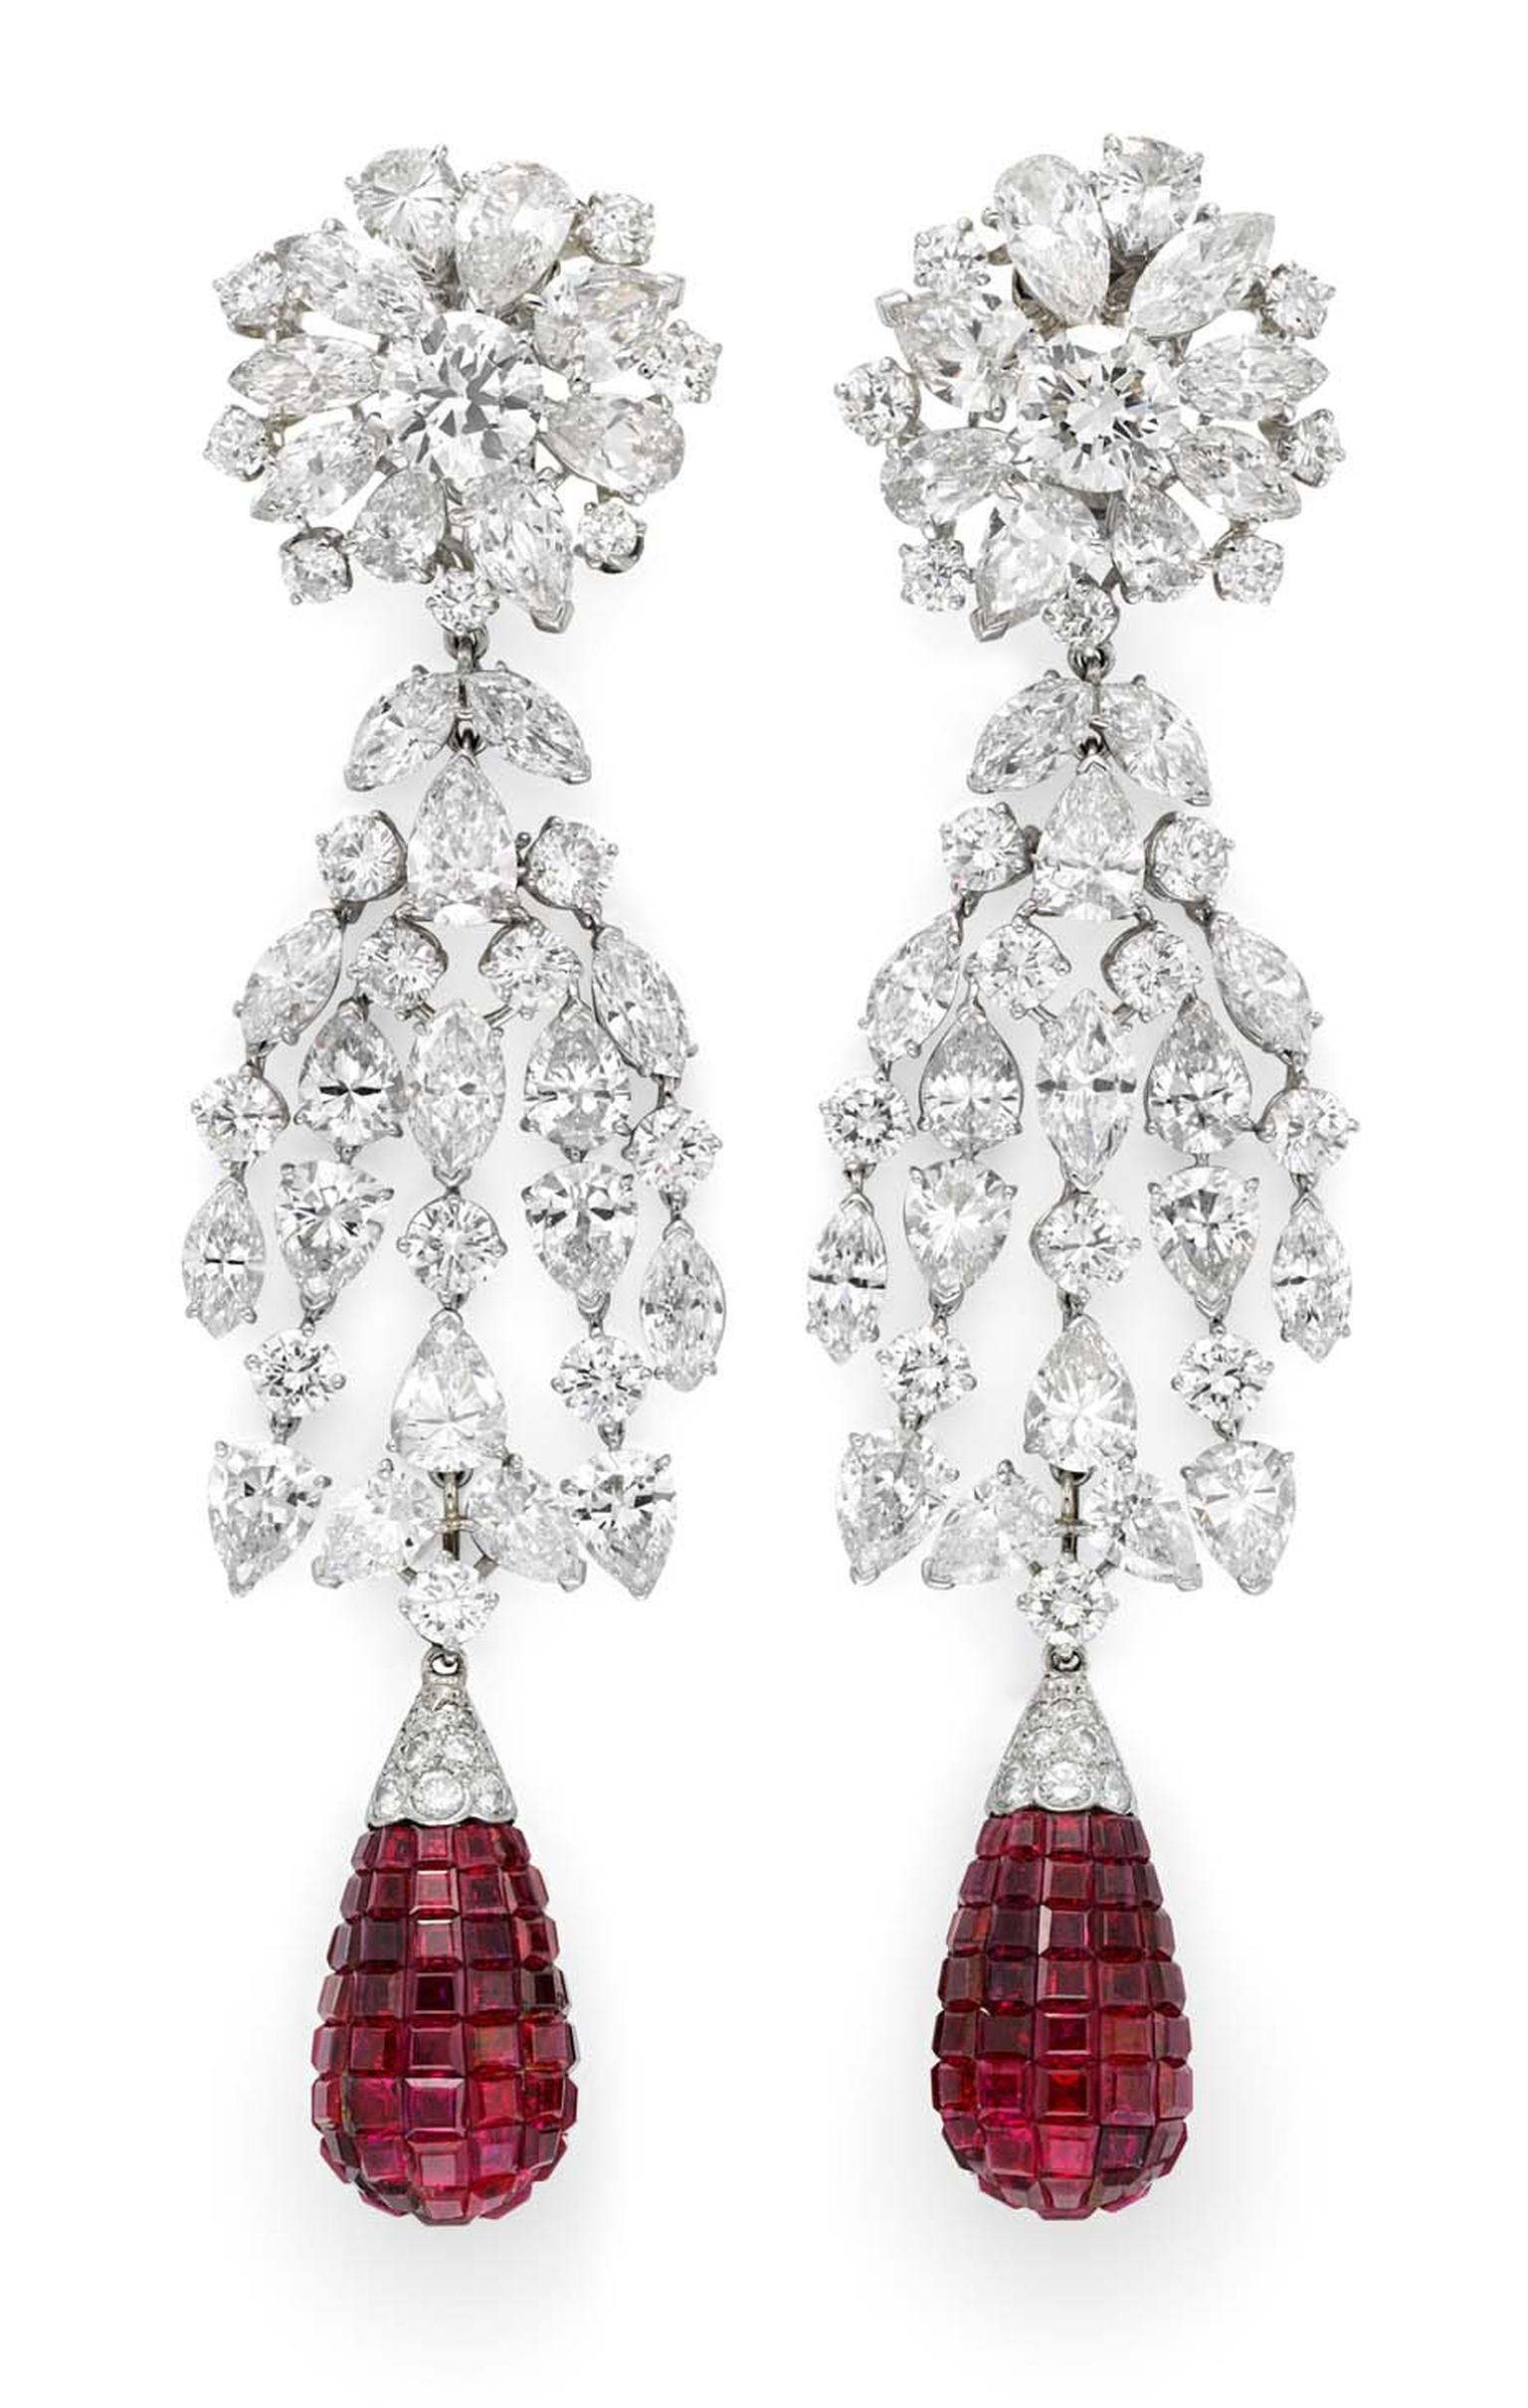 Simon Teakle Fine Jewellery, USA, is exhibiting a rare pair of Van Cleef & Arpels mystery set ruby and diamond earrings circa 1930.